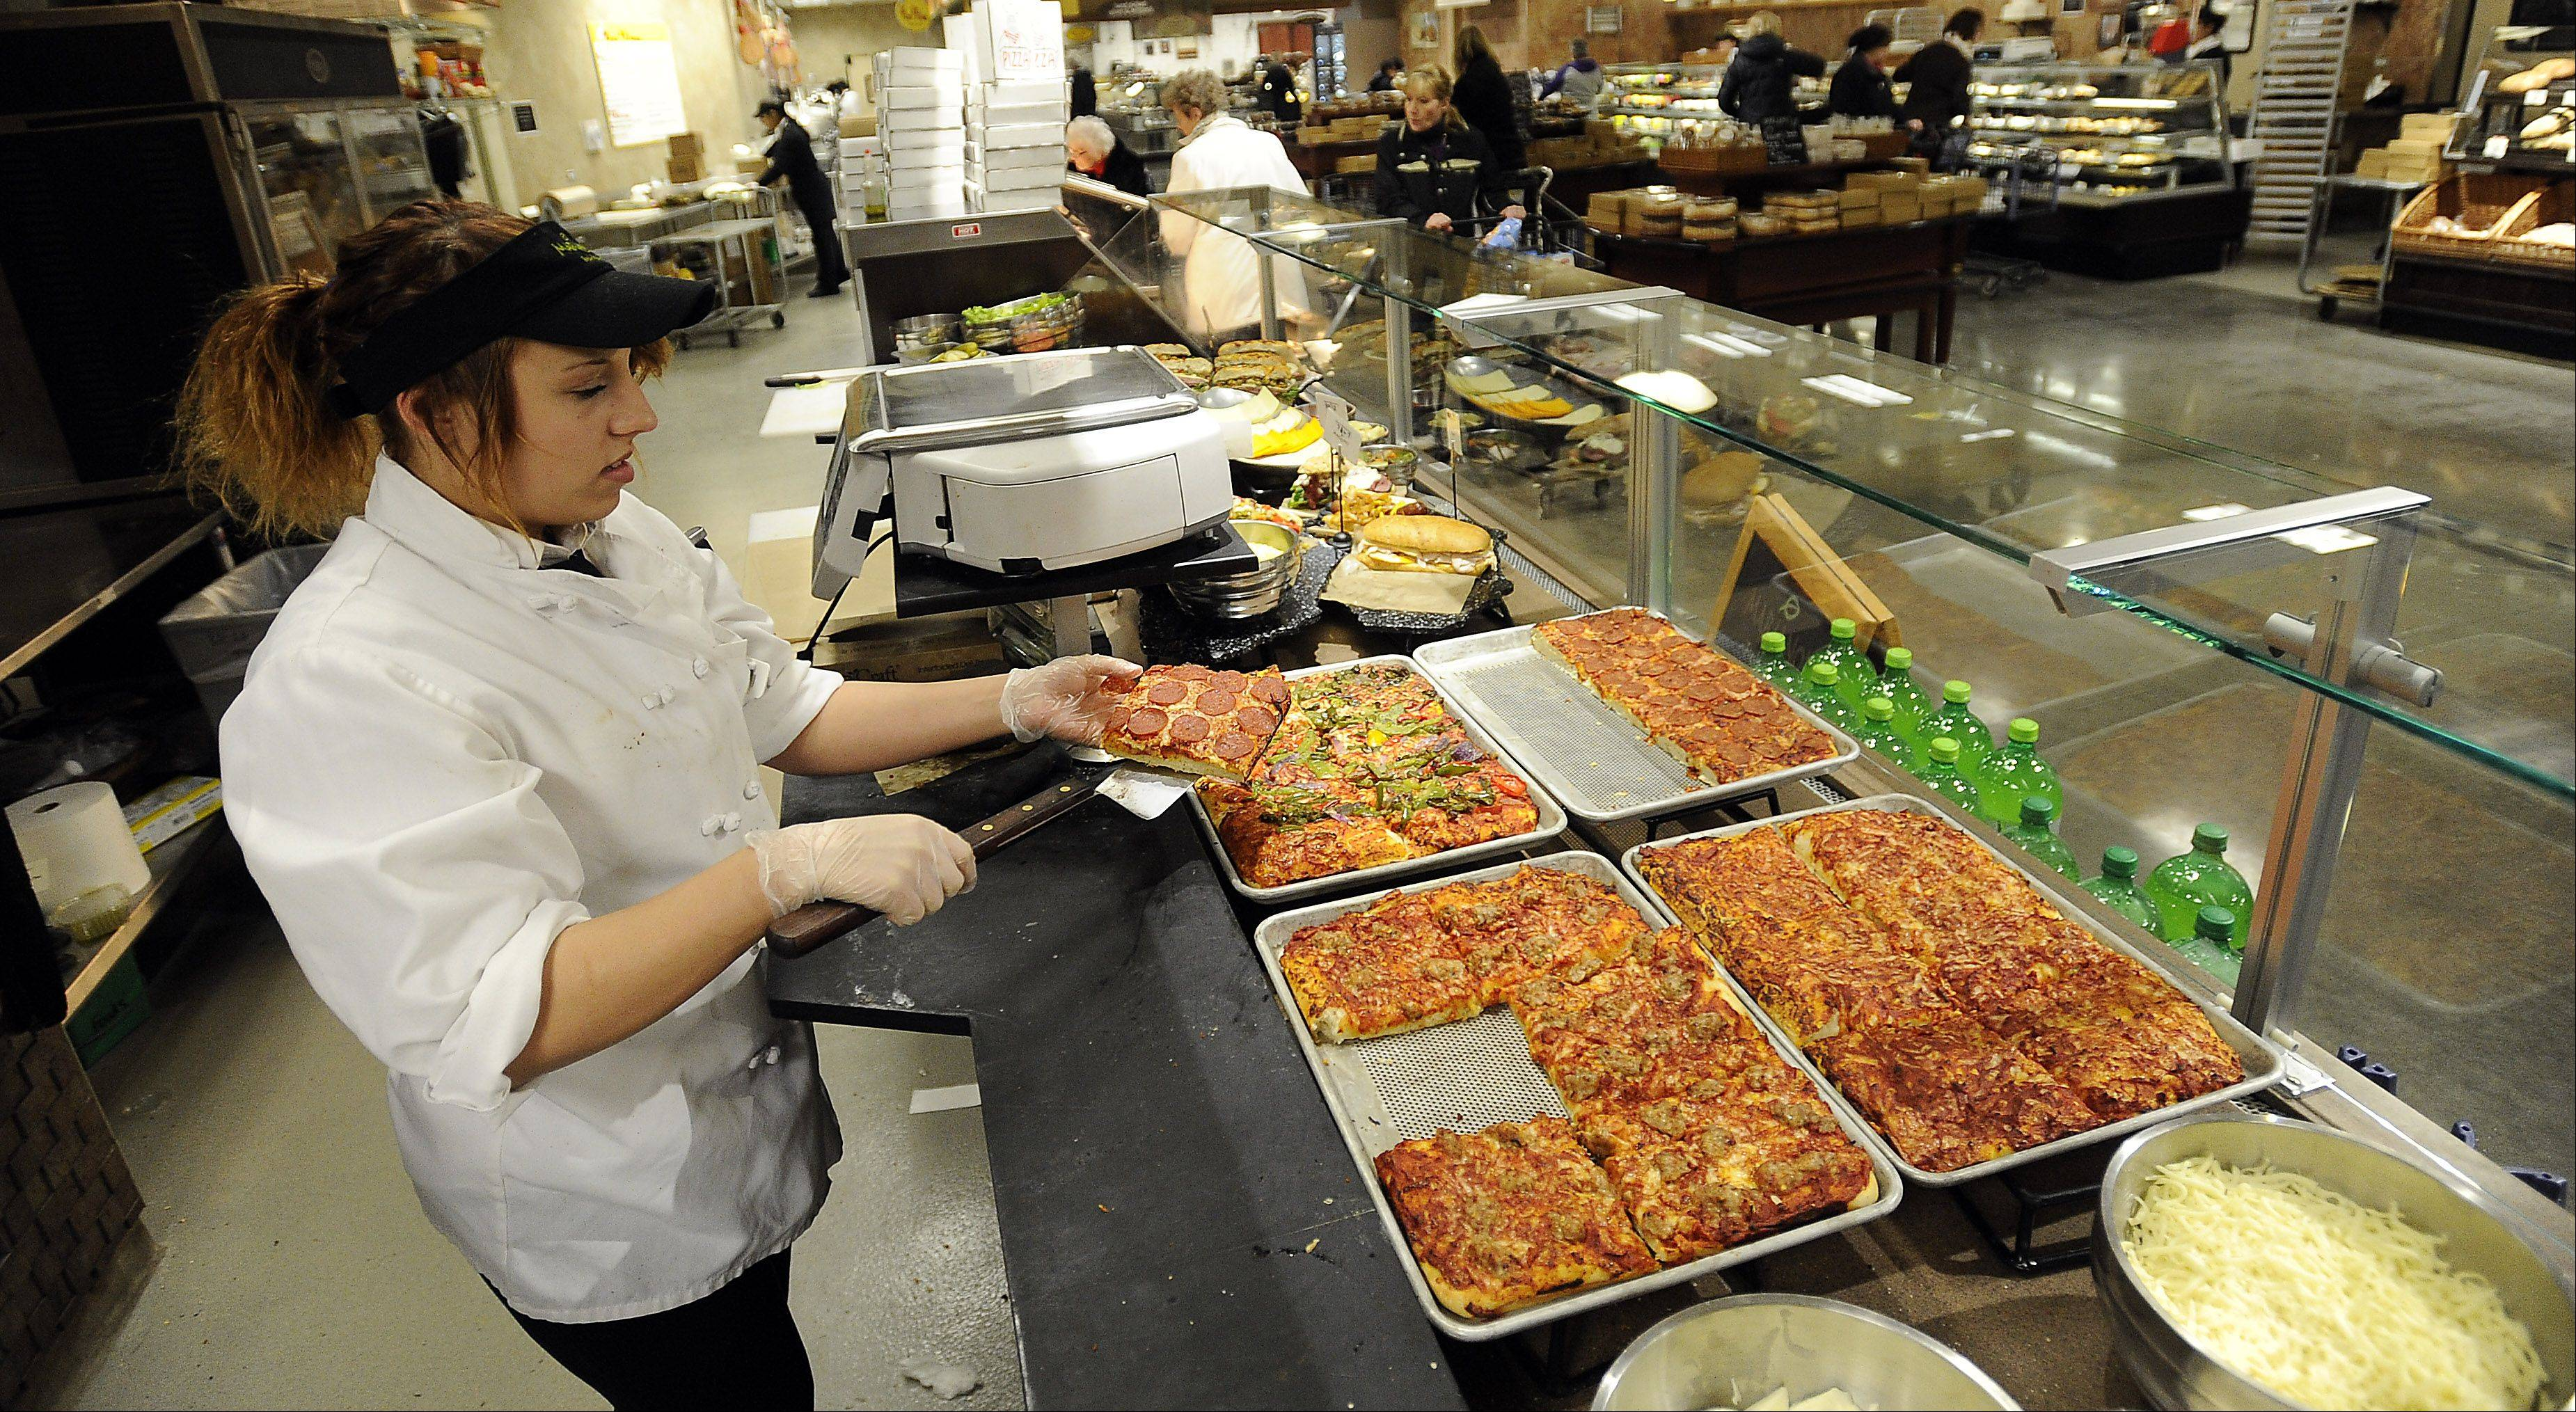 Cori Baum of Hoffman Estates serves pizza at Mariano's in Palatine. Hot food offerings provide easy dinner options for suburban customers.